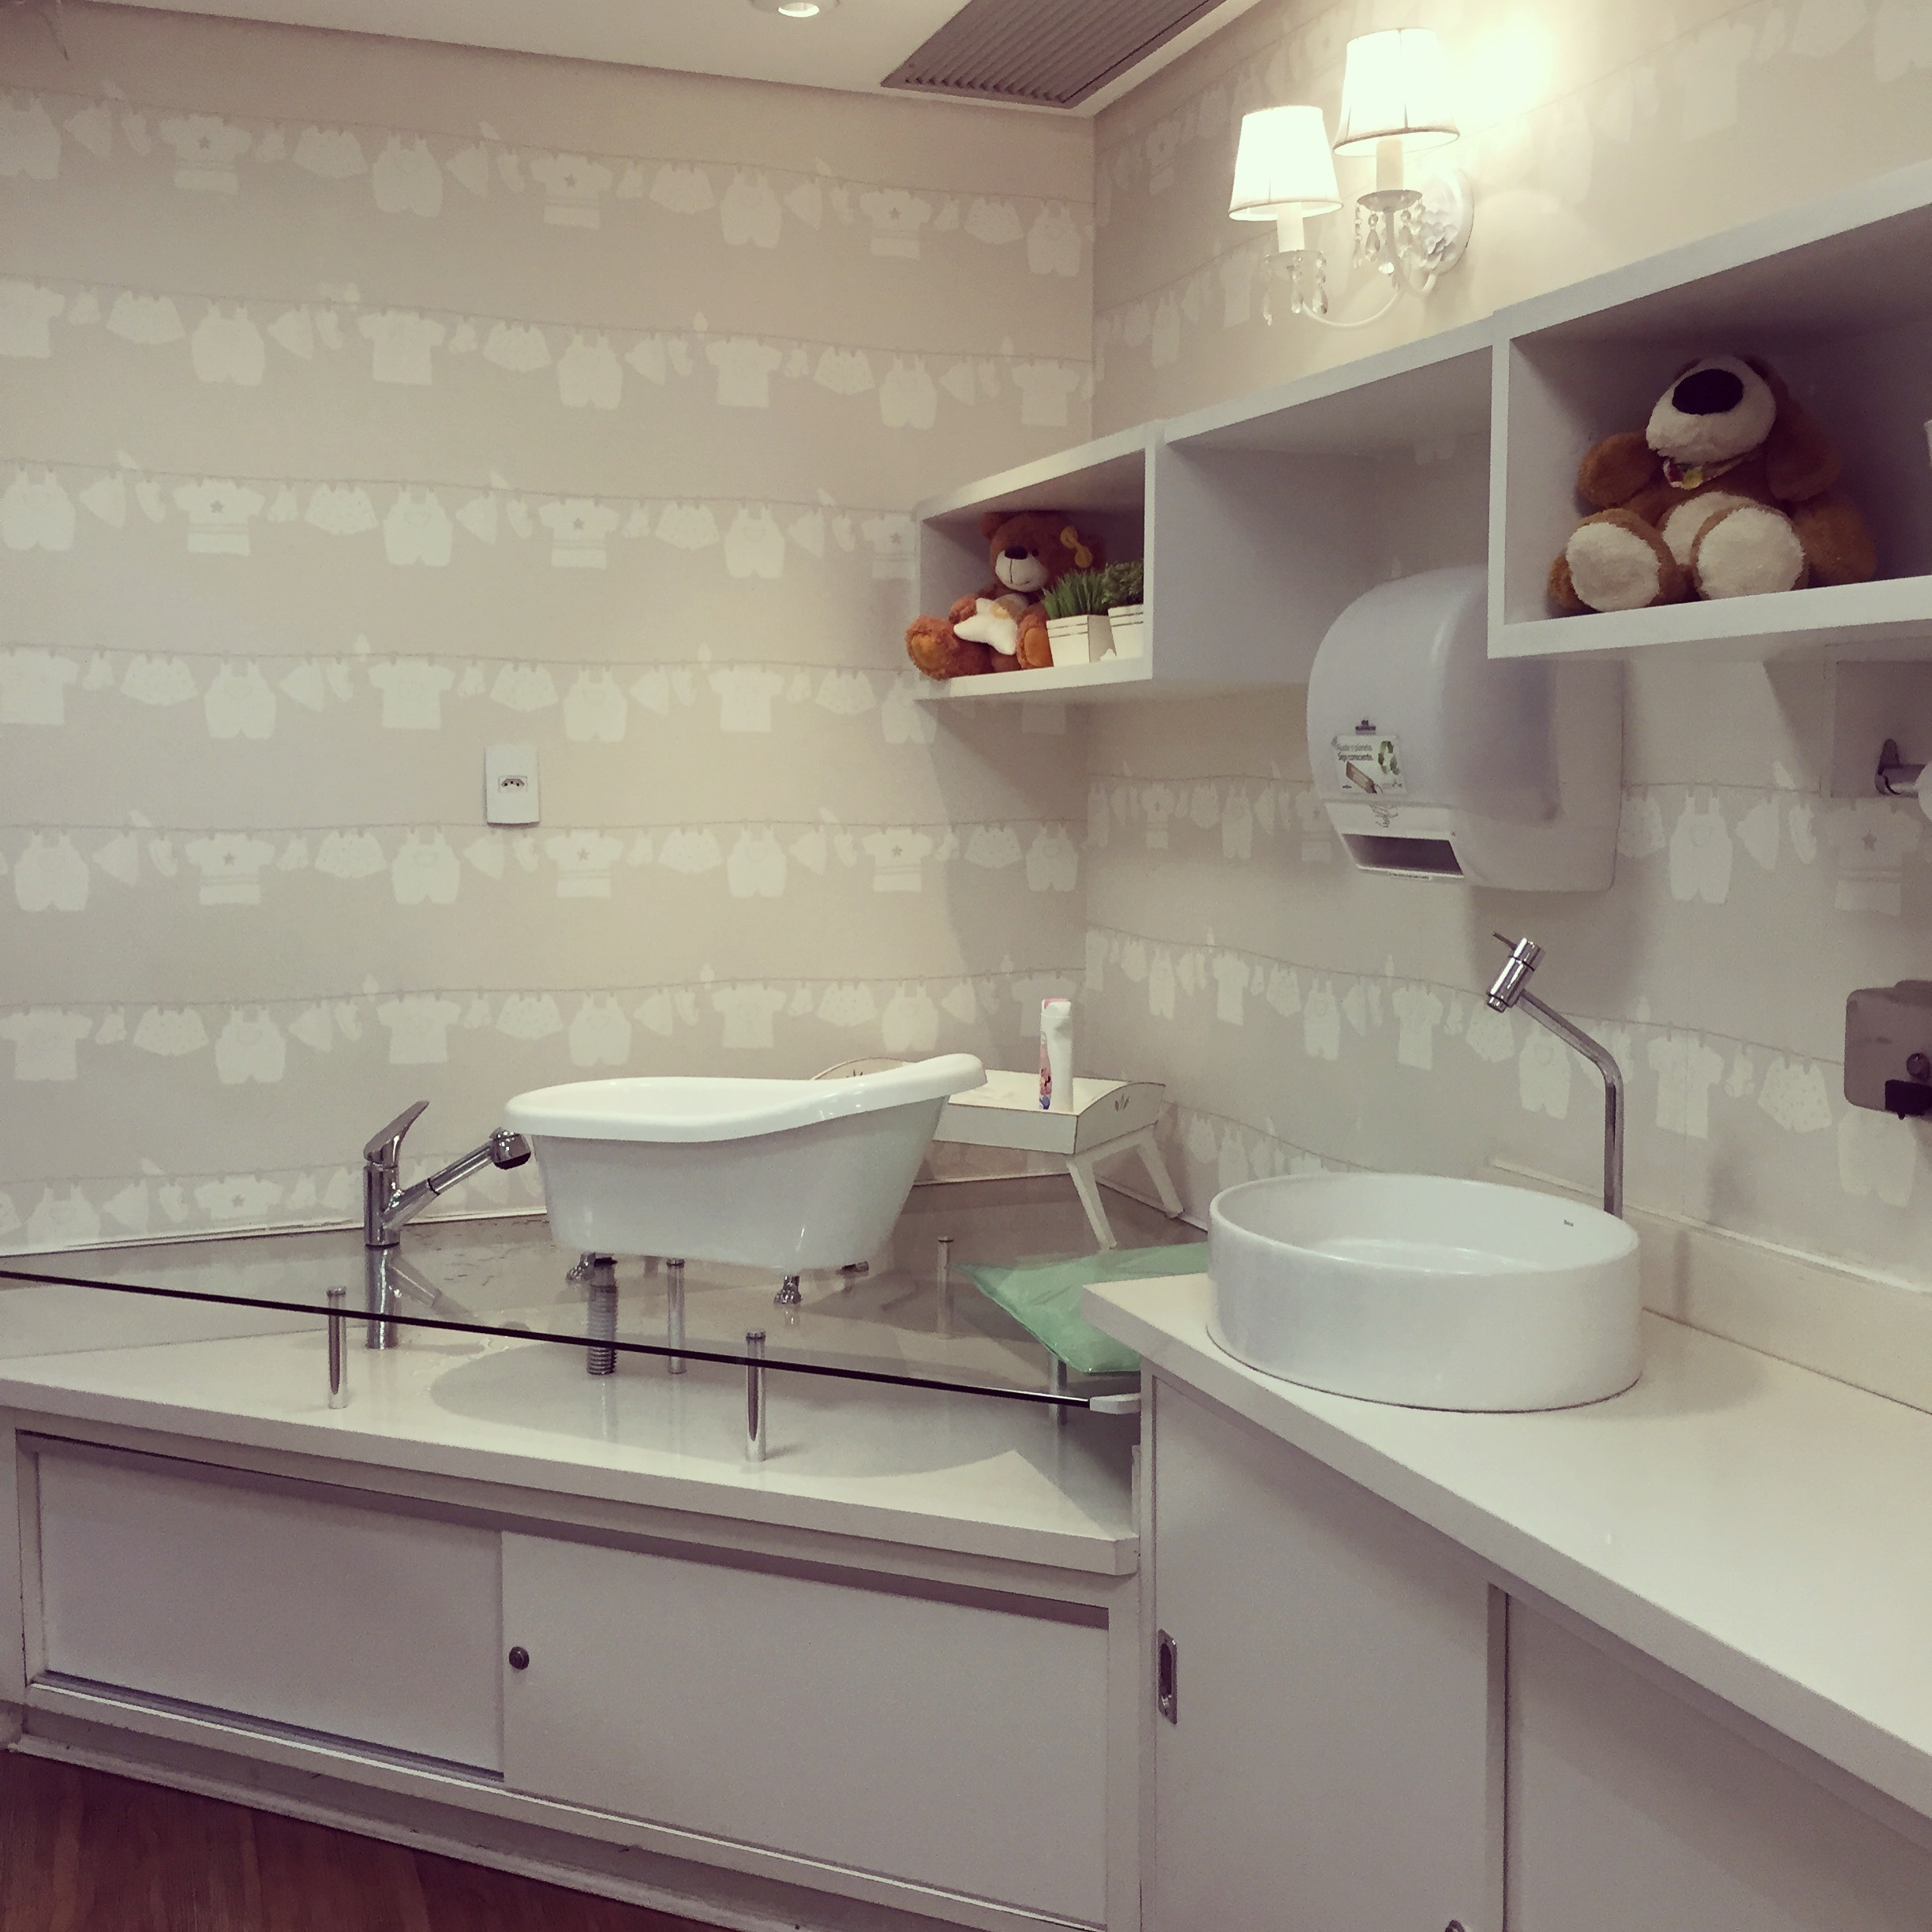 There is a bath, sink and any supplies you may need available. The wall is covered in a clothes line motif wallpaper in neutral colours, and there are shelves styled with stuffed toys and artificial  plants.